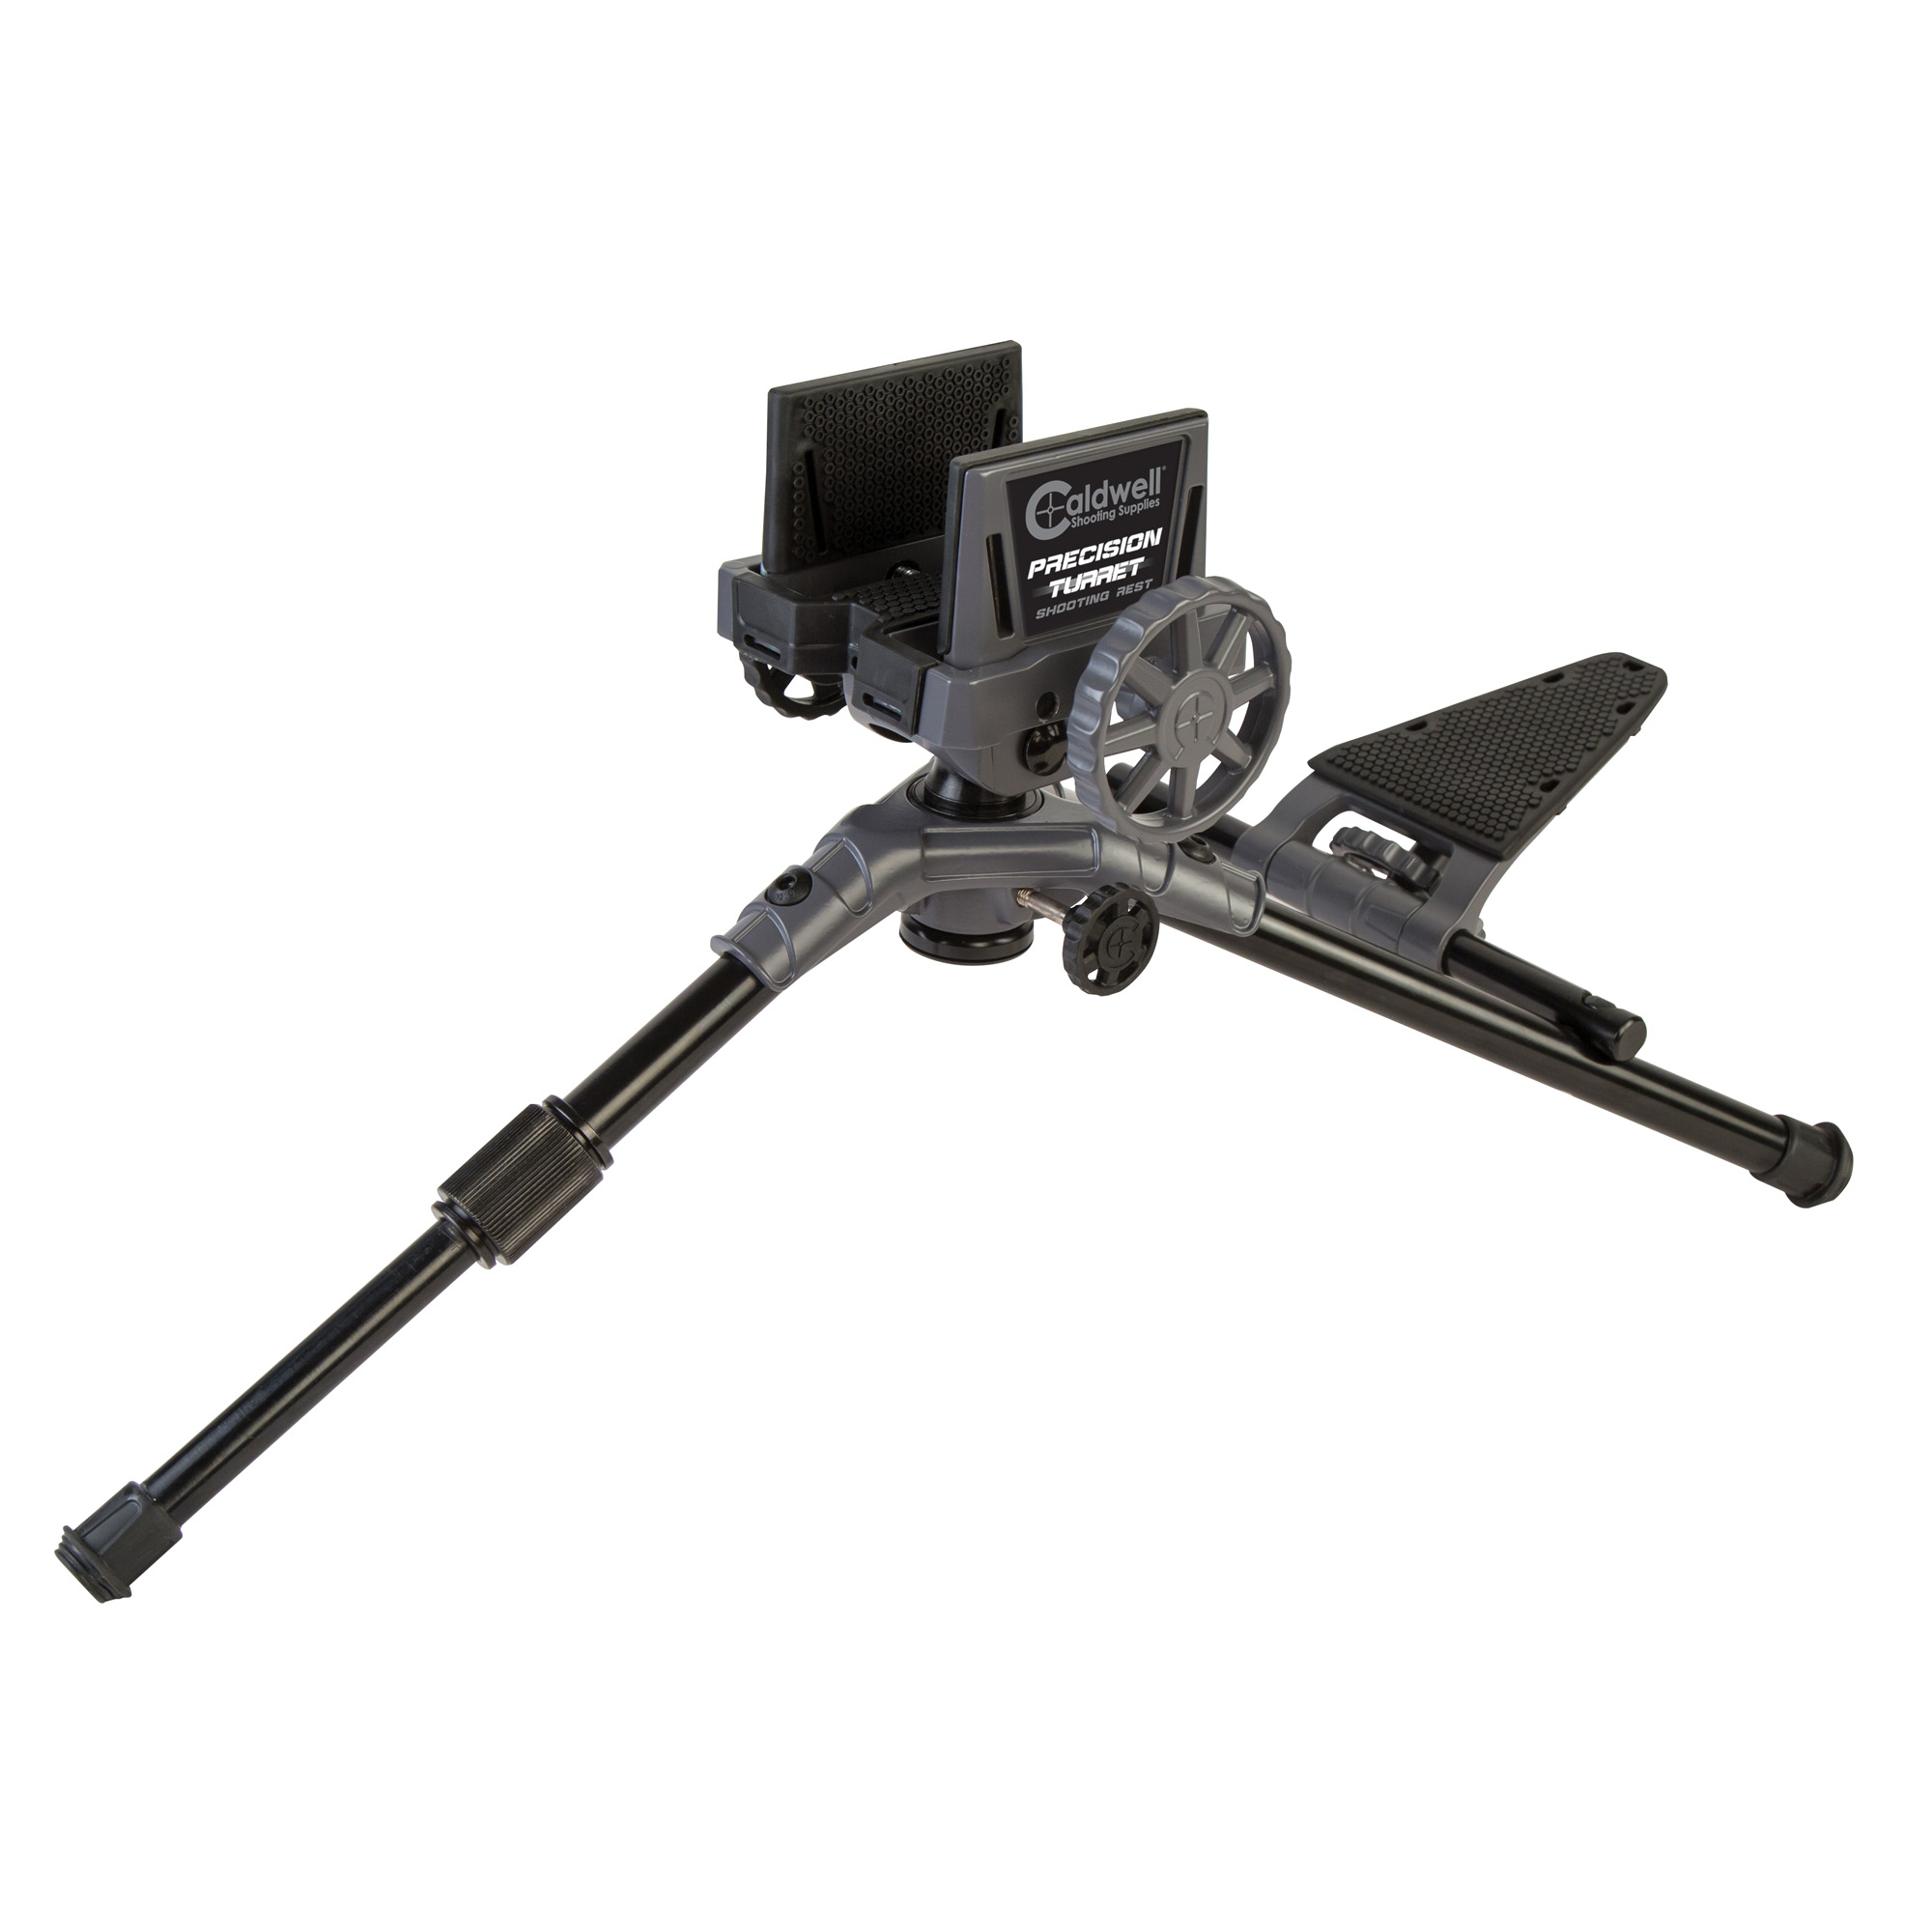 Caldwell Turret Shooting Rest